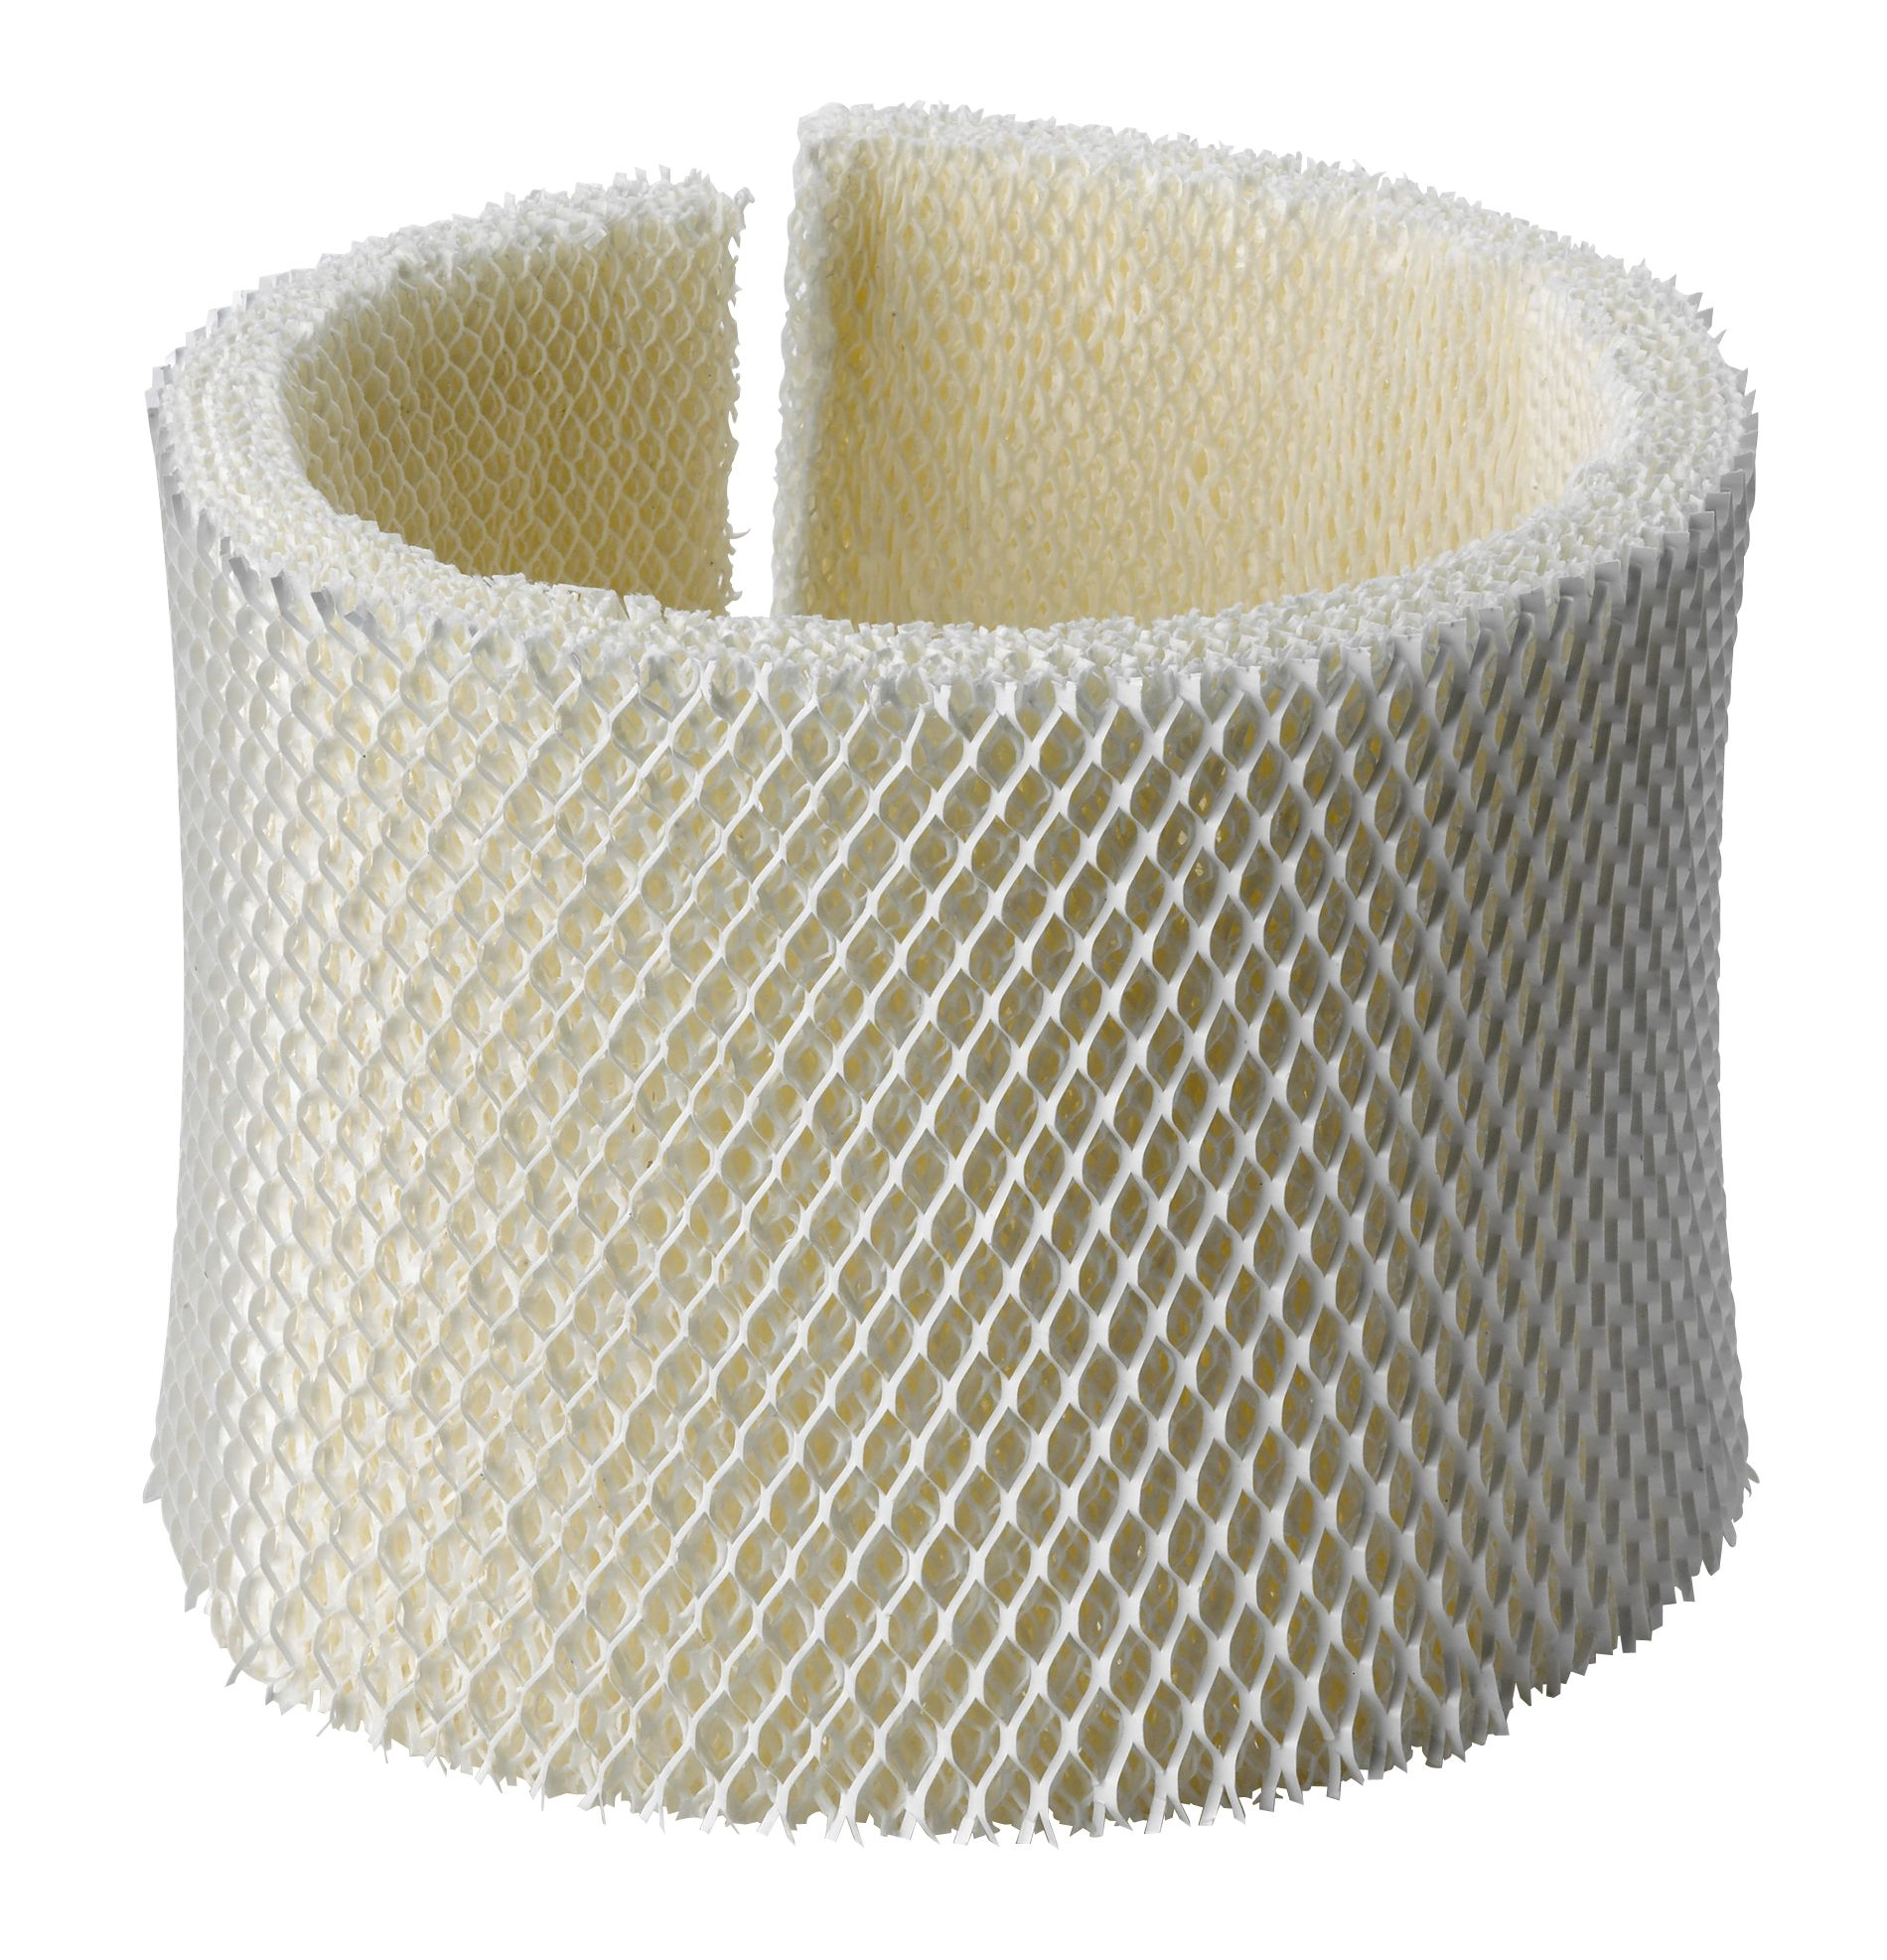 Kenmore Replacement Filter for Humidifier